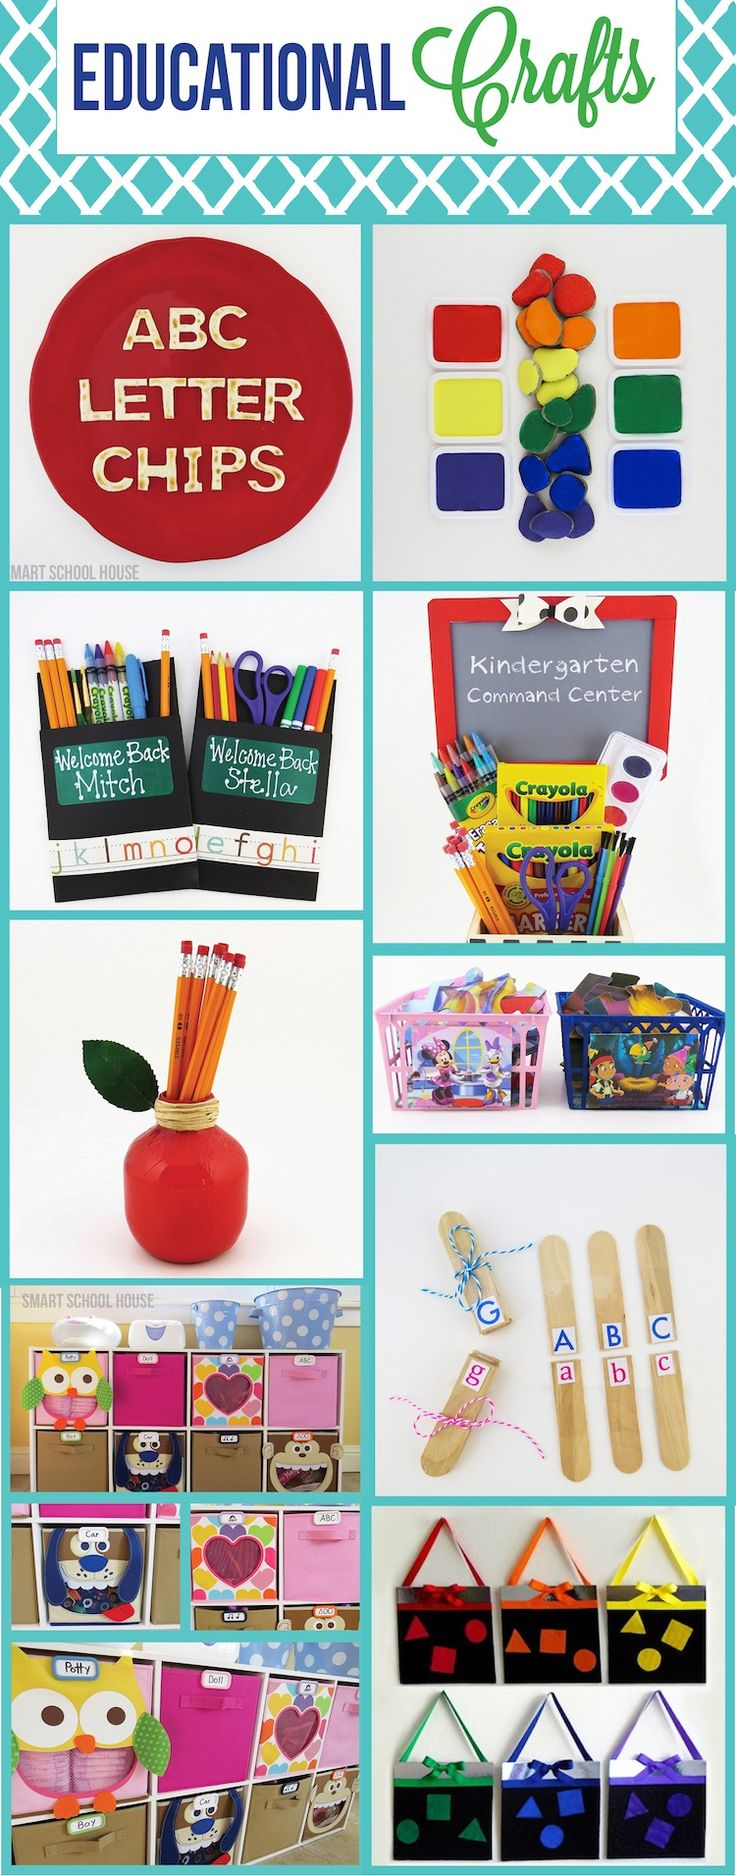 Educational Crafts - perfect for preschoolers and kindergarteners.